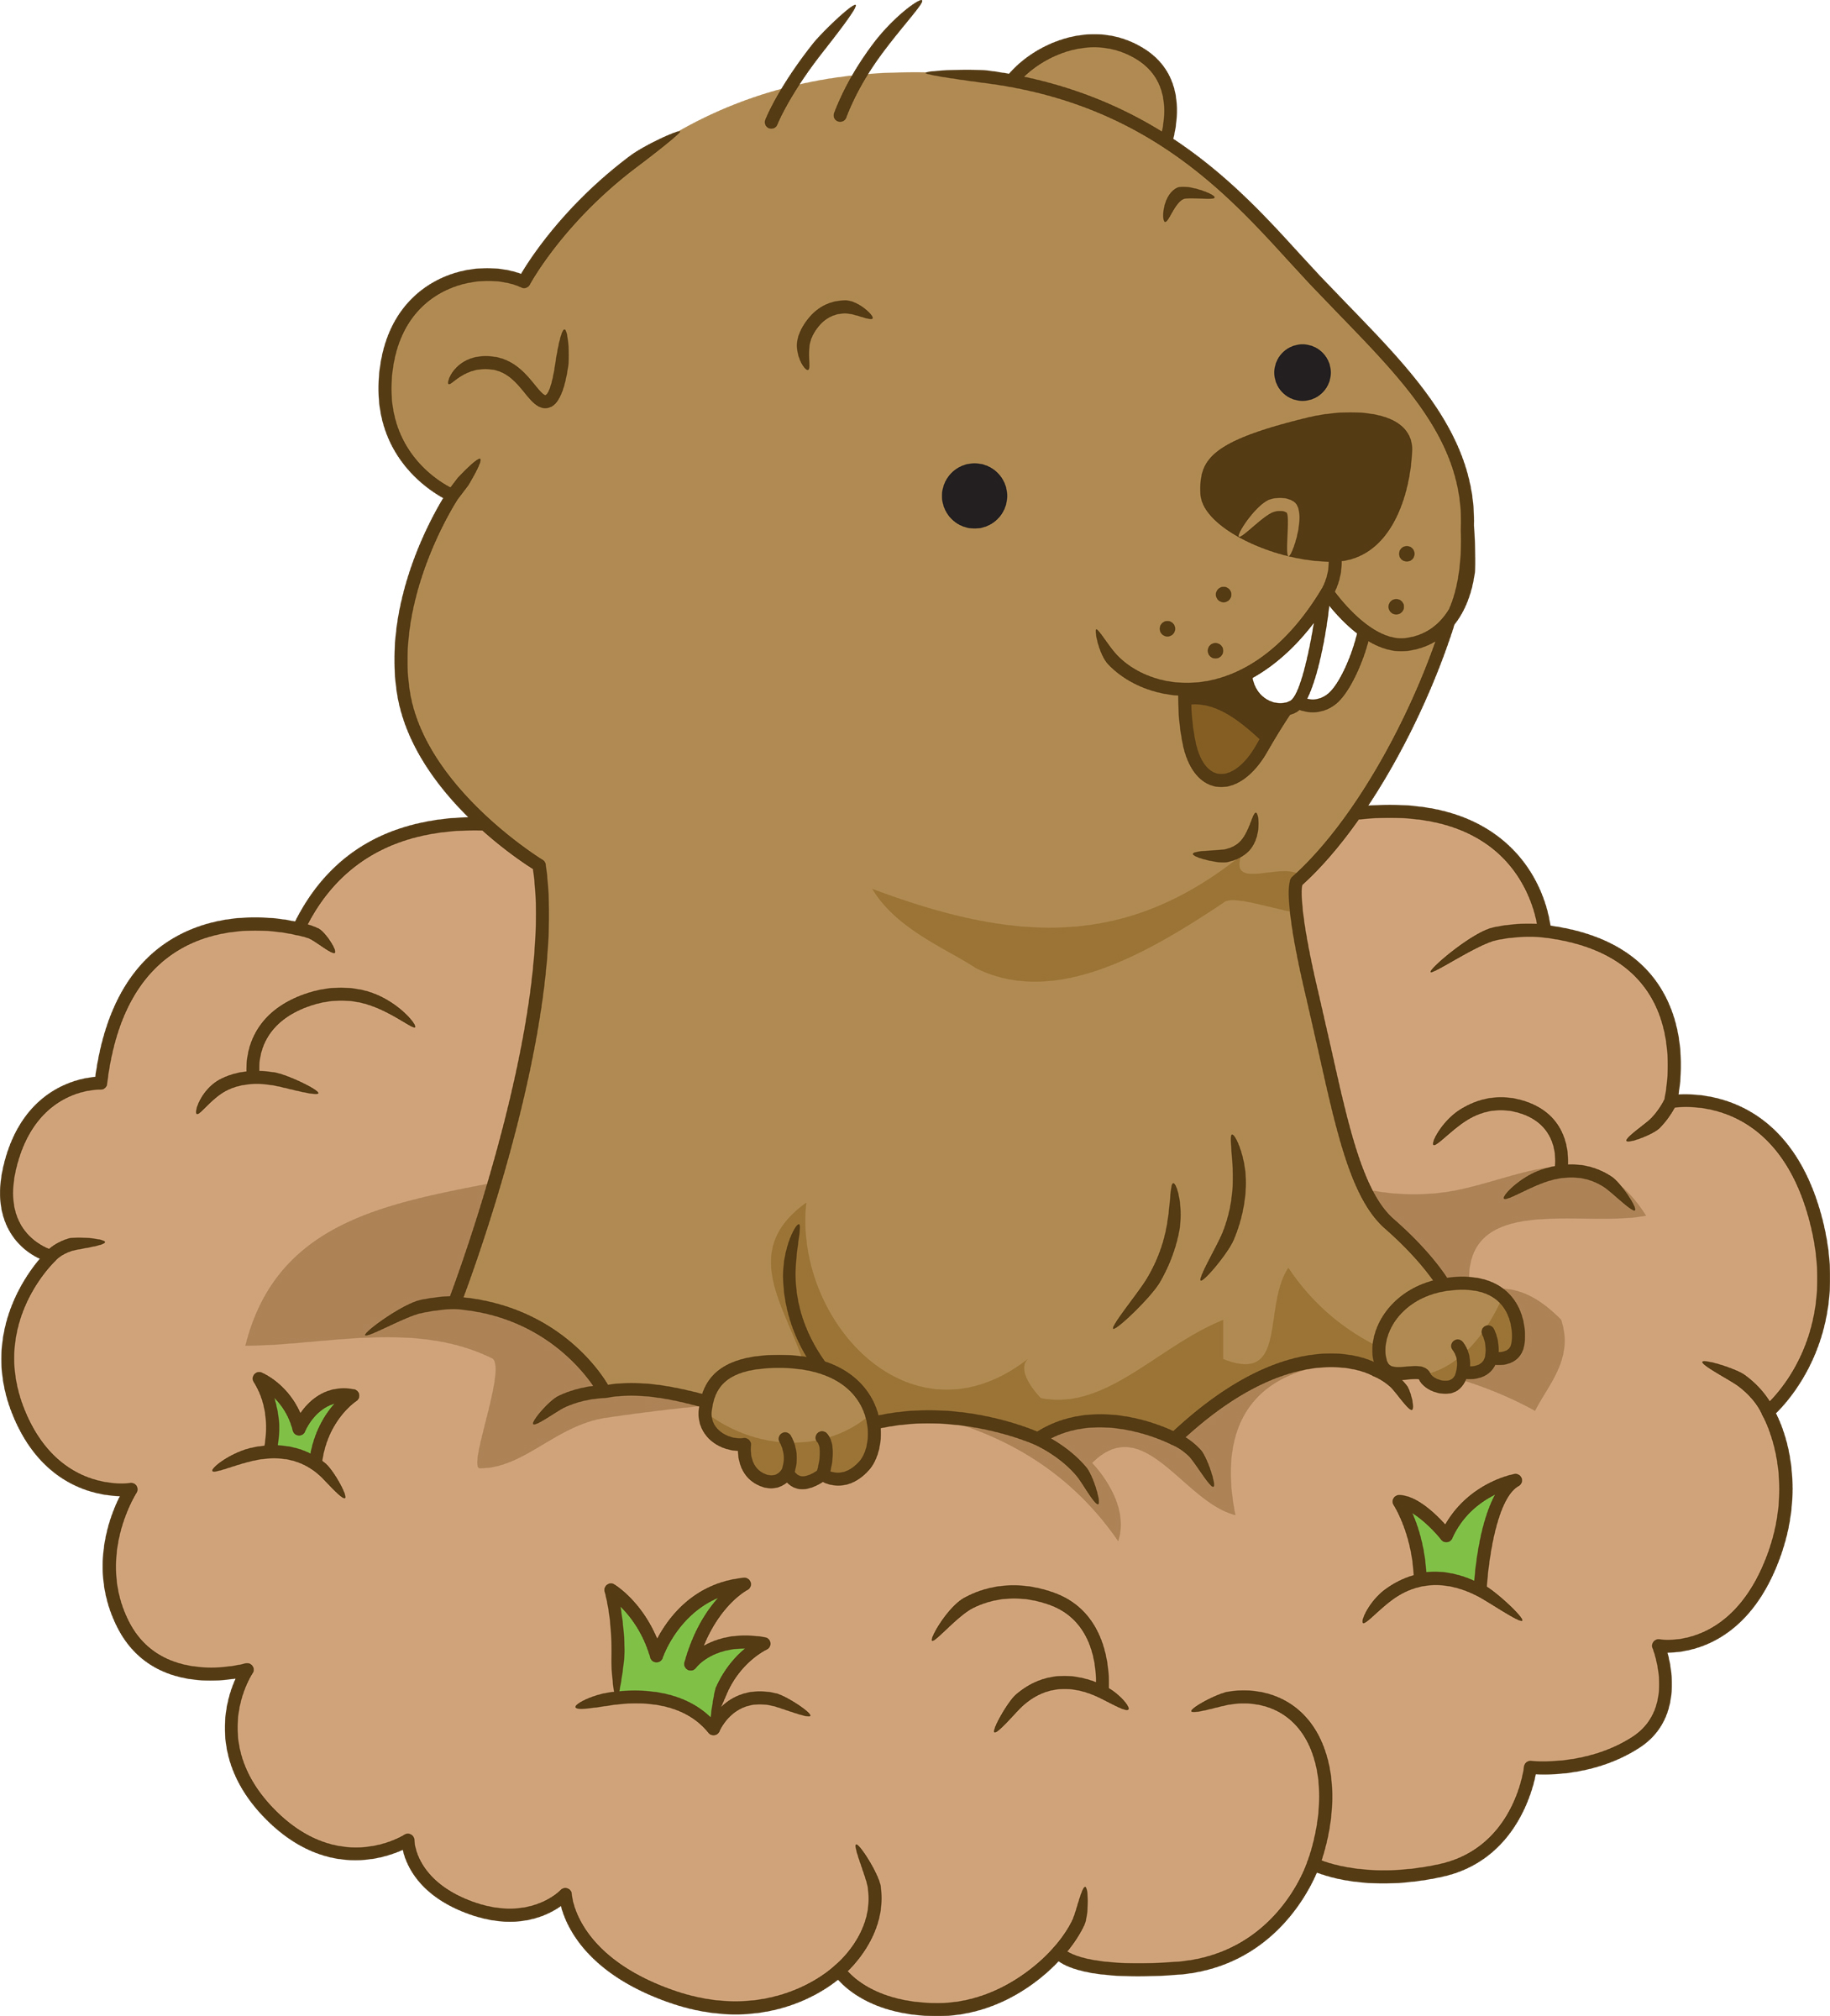 Groundhog cliparts. Free Groundhog Clipart